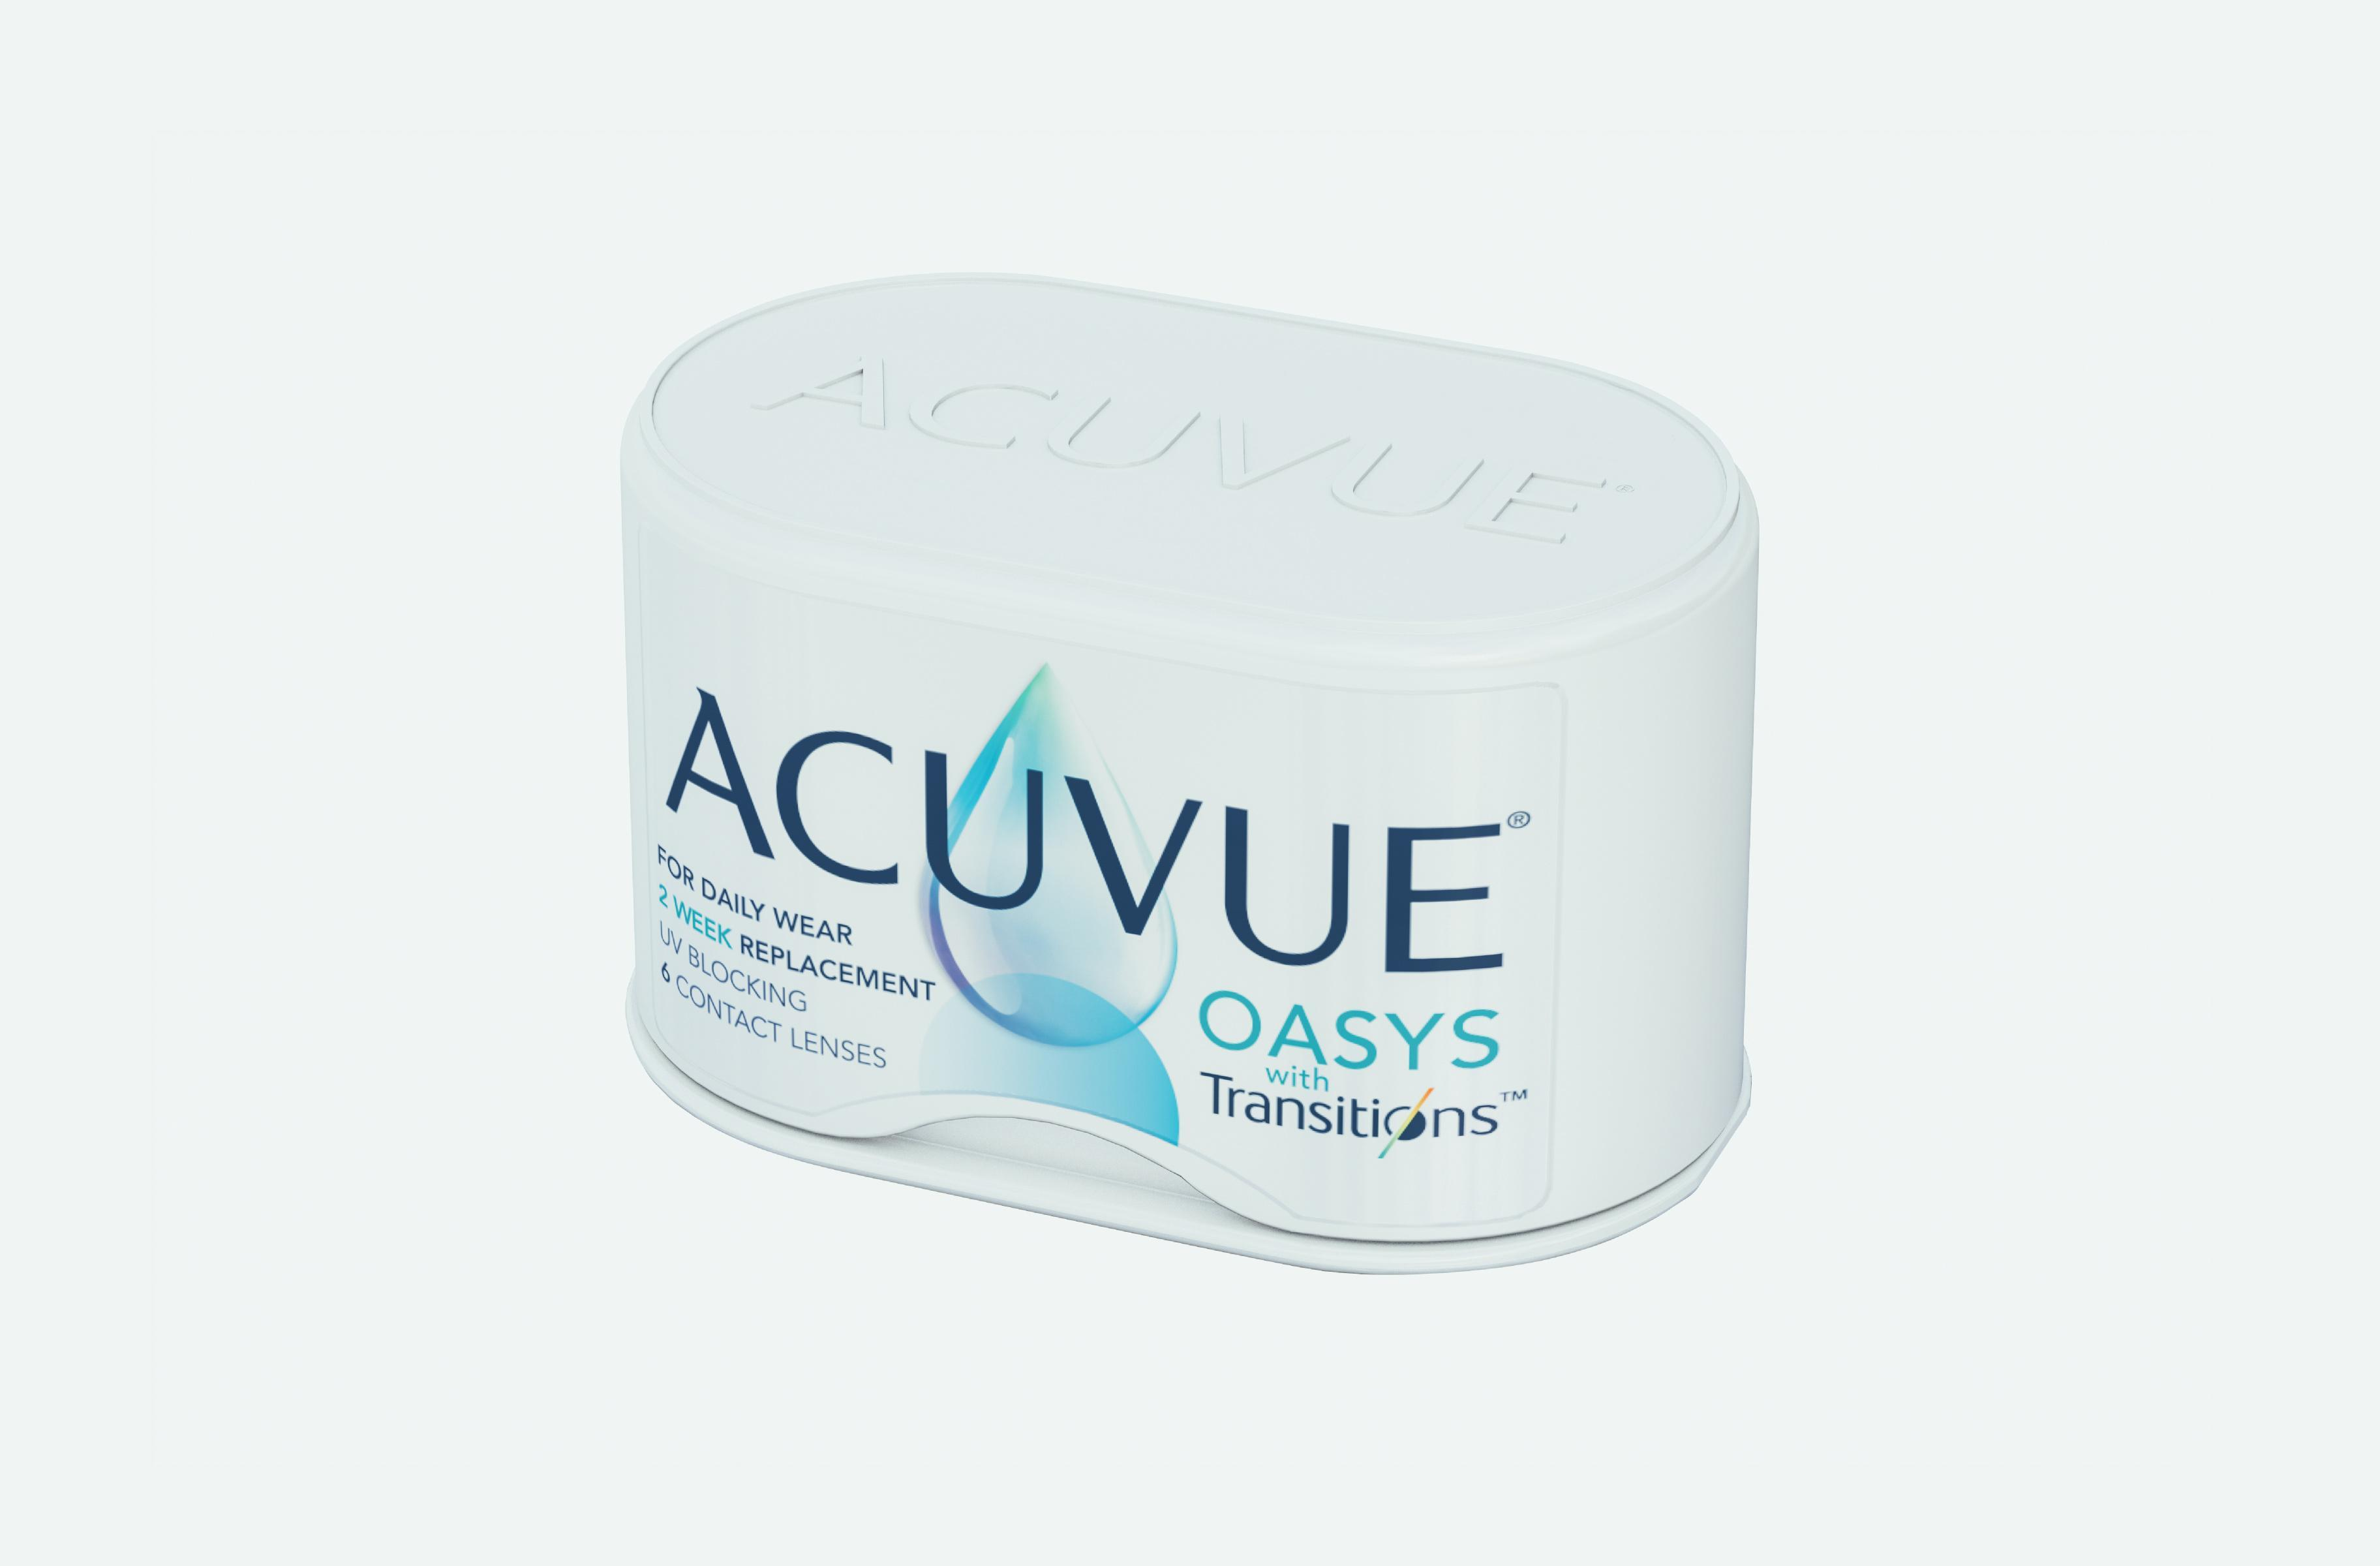 Emballage Acuvue